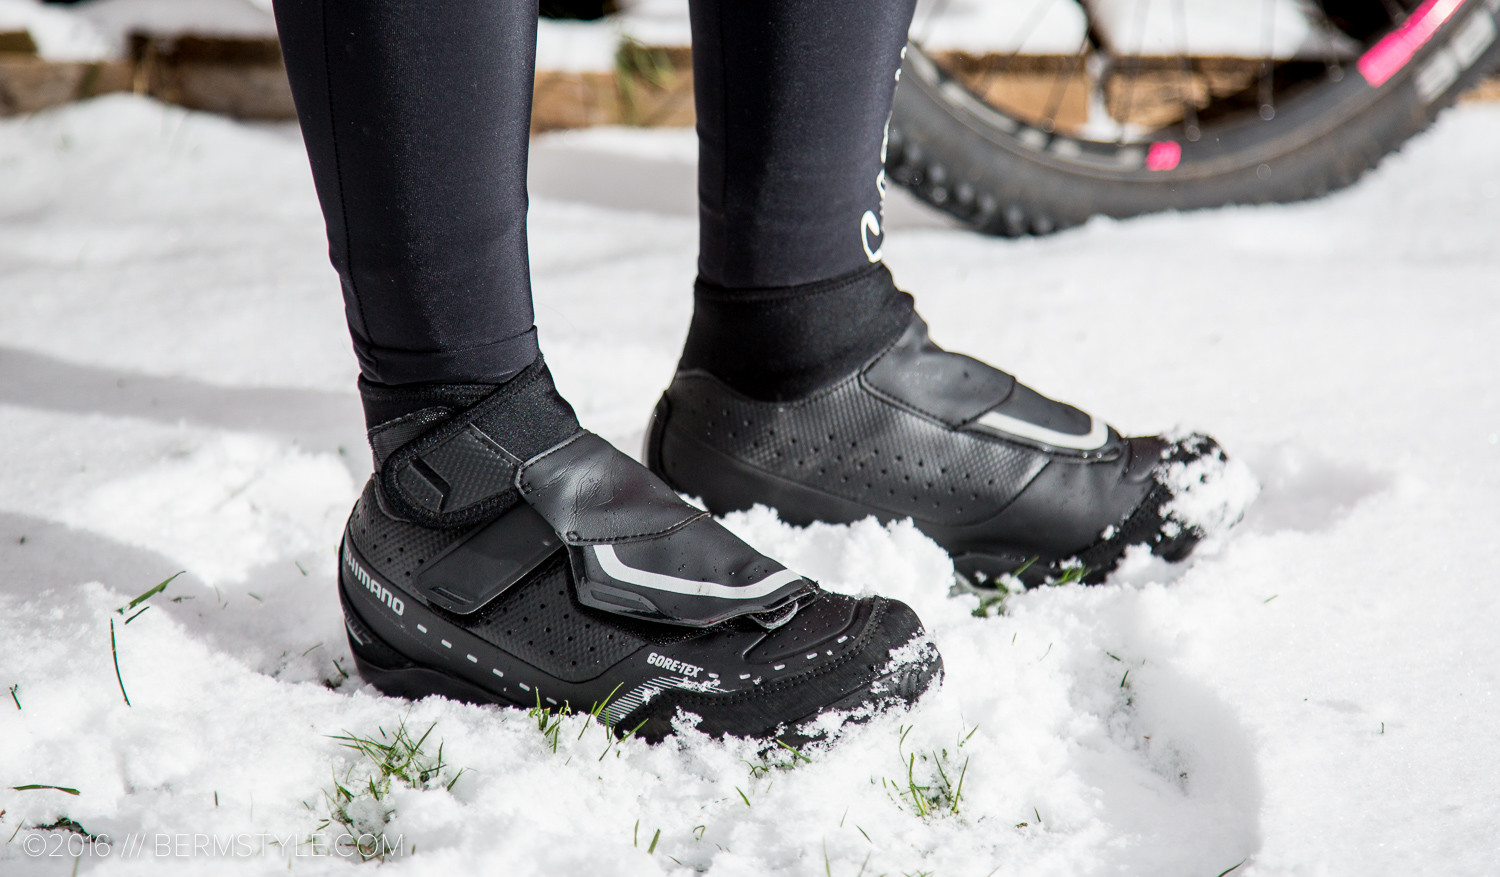 Review: Shimano MW7 Winter Shoes